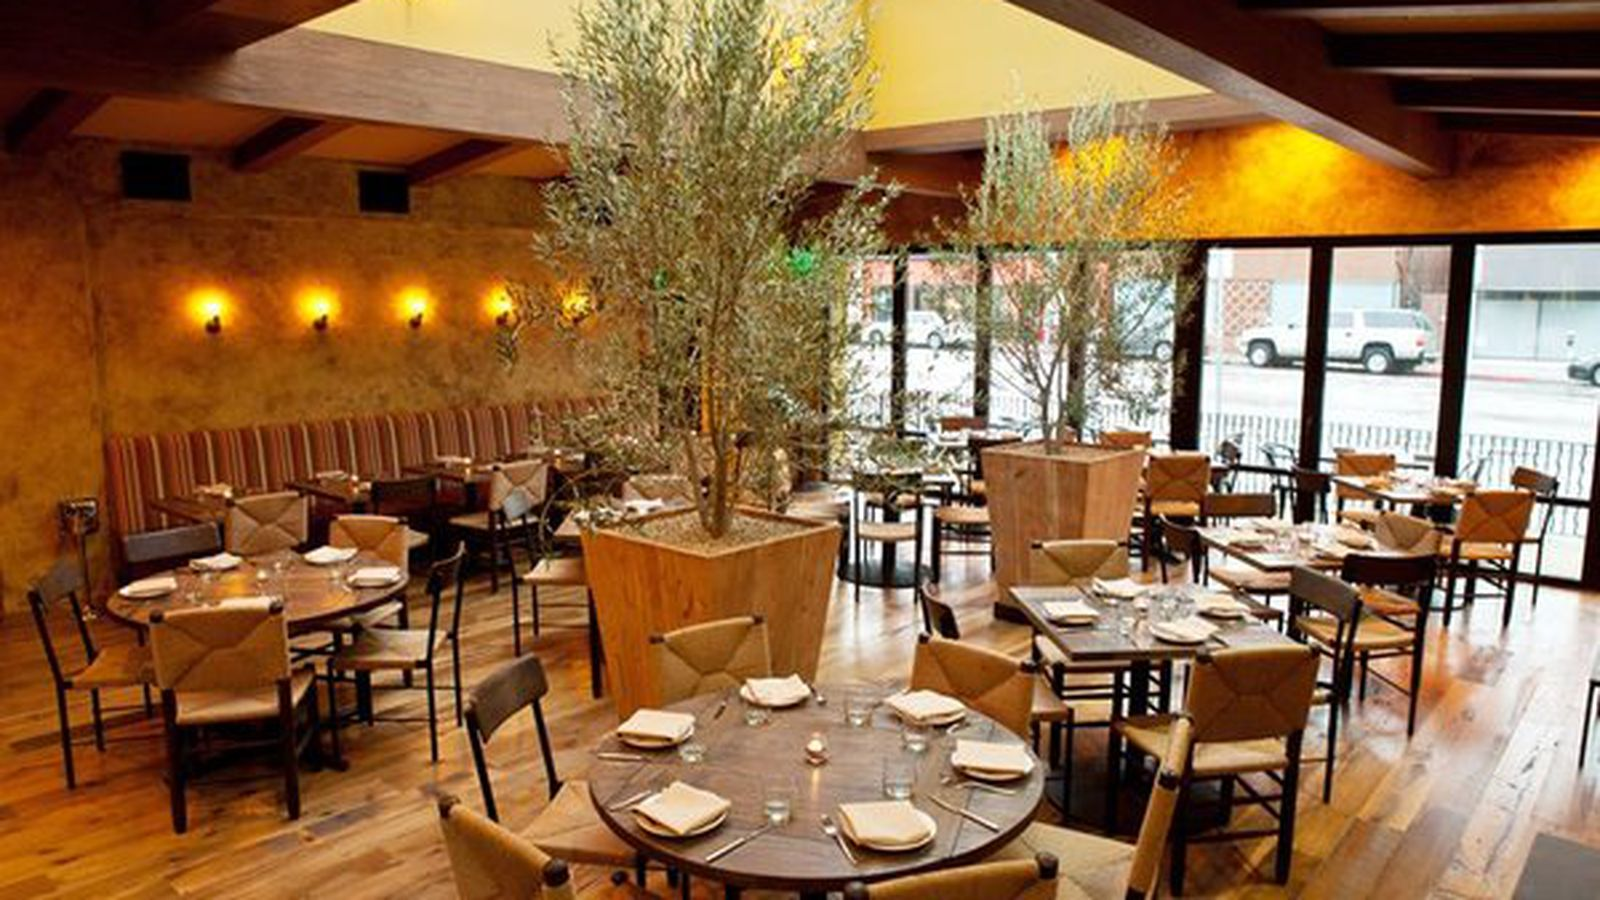 Thehwoodgroup Replaces Mezze with the nice guy  Eater LA